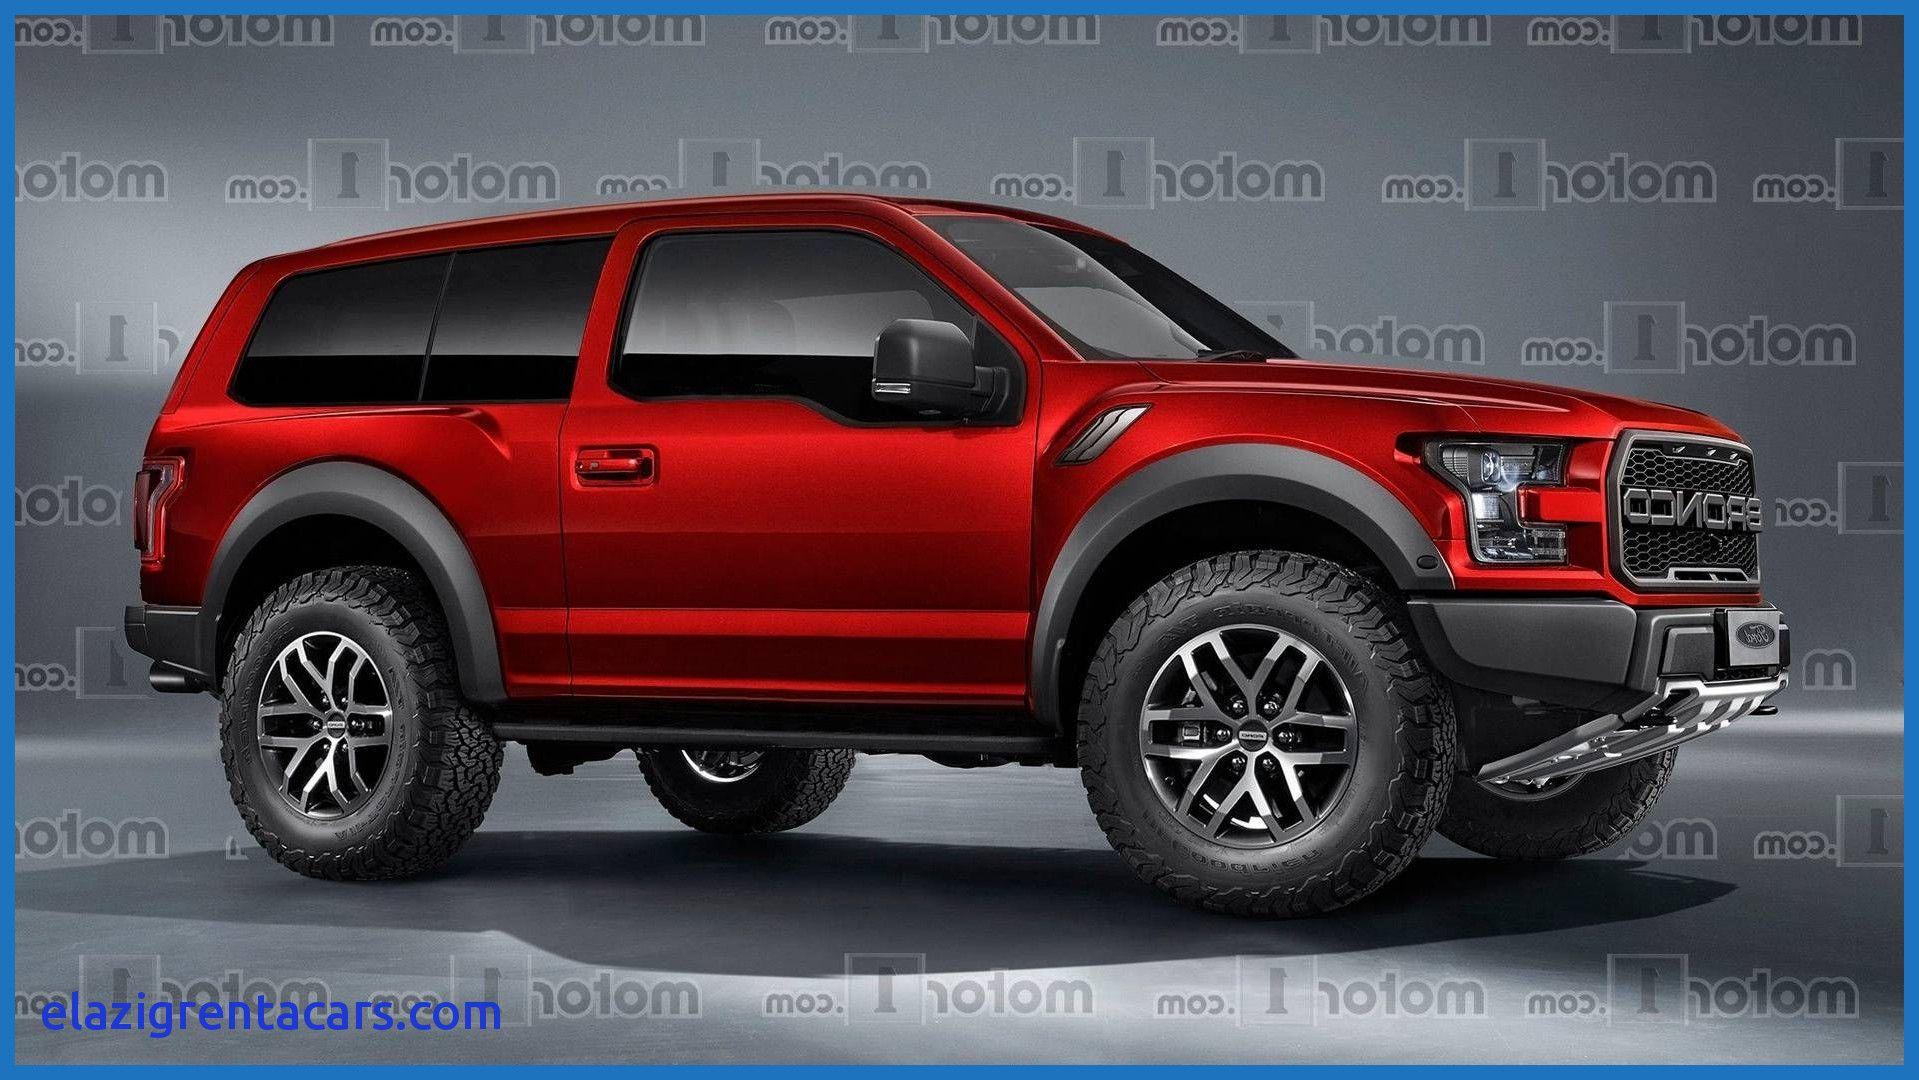 2019 Chevrolet Blazer Review Awesome 2019 Chevy K5 Blazer 2019